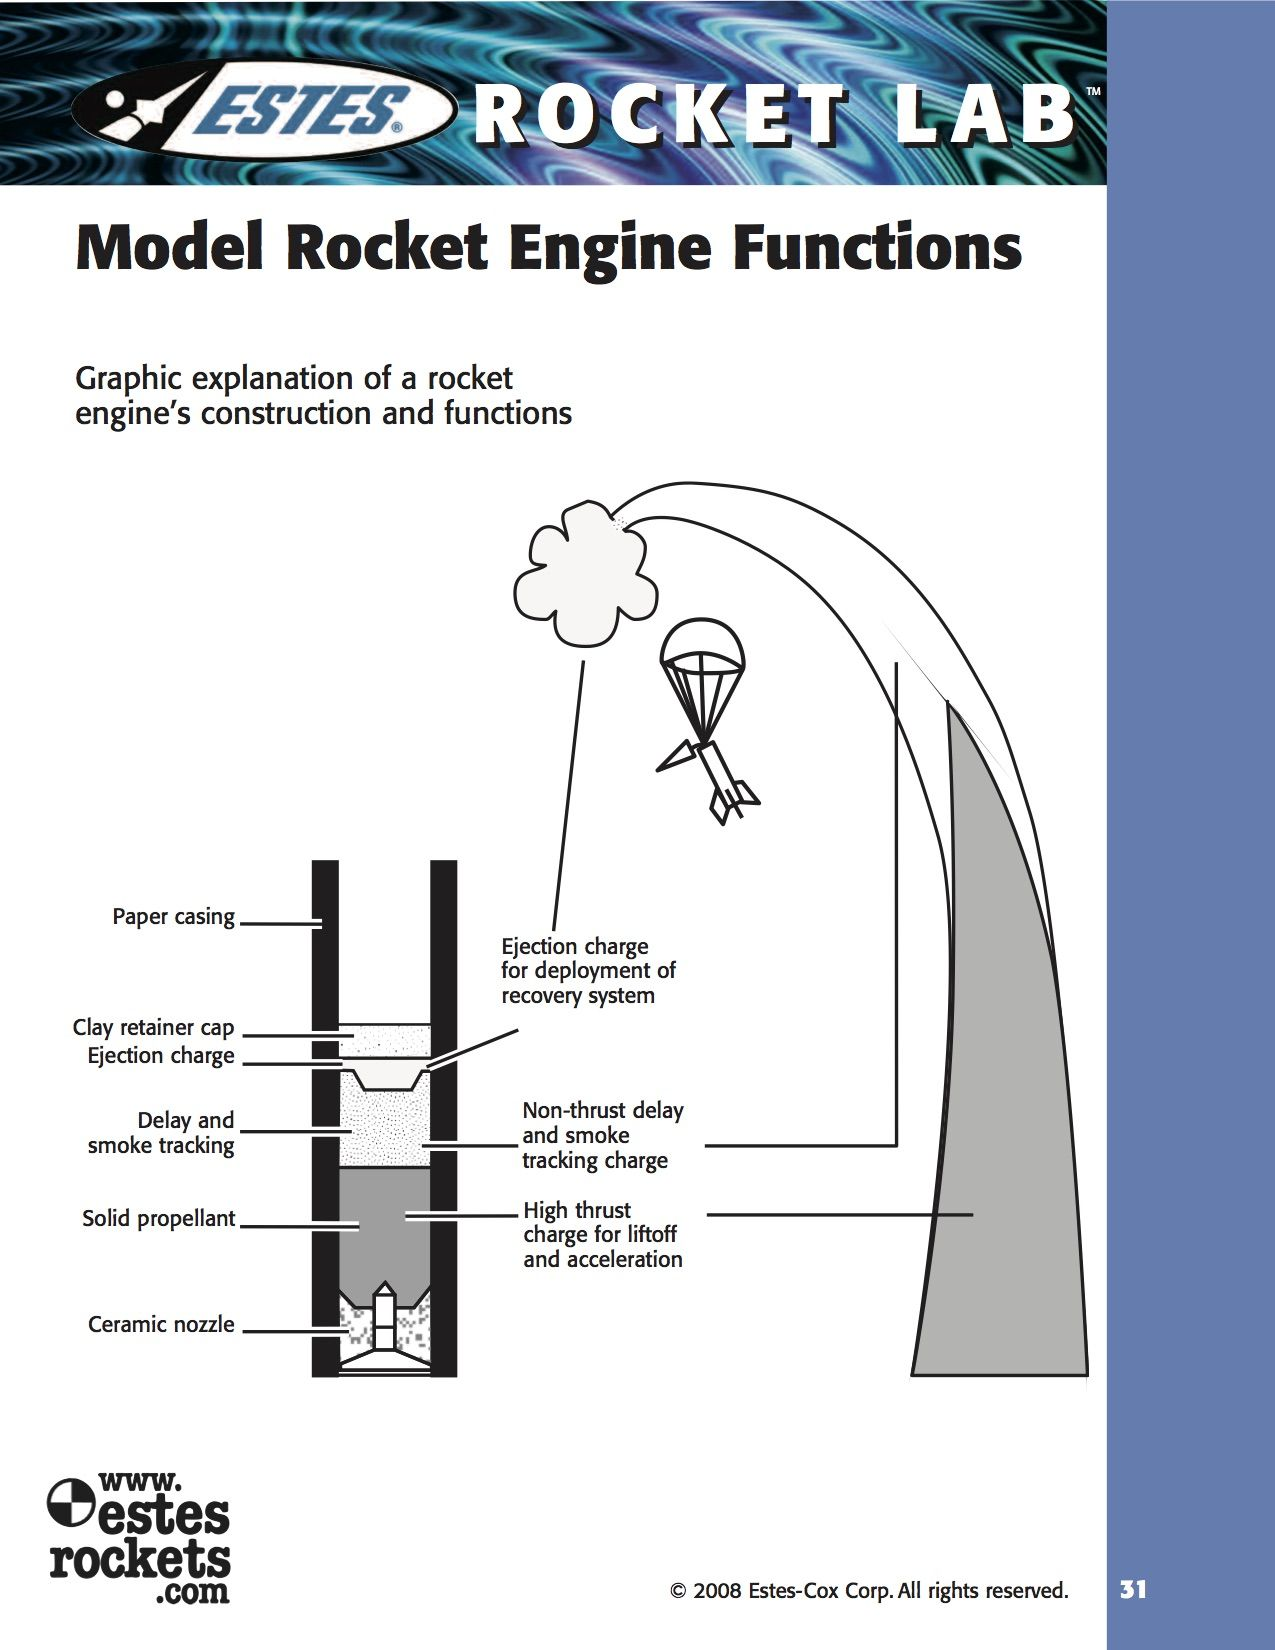 medium resolution of model rocket engine functions graphic explanation of a rocket engine s construction and functions